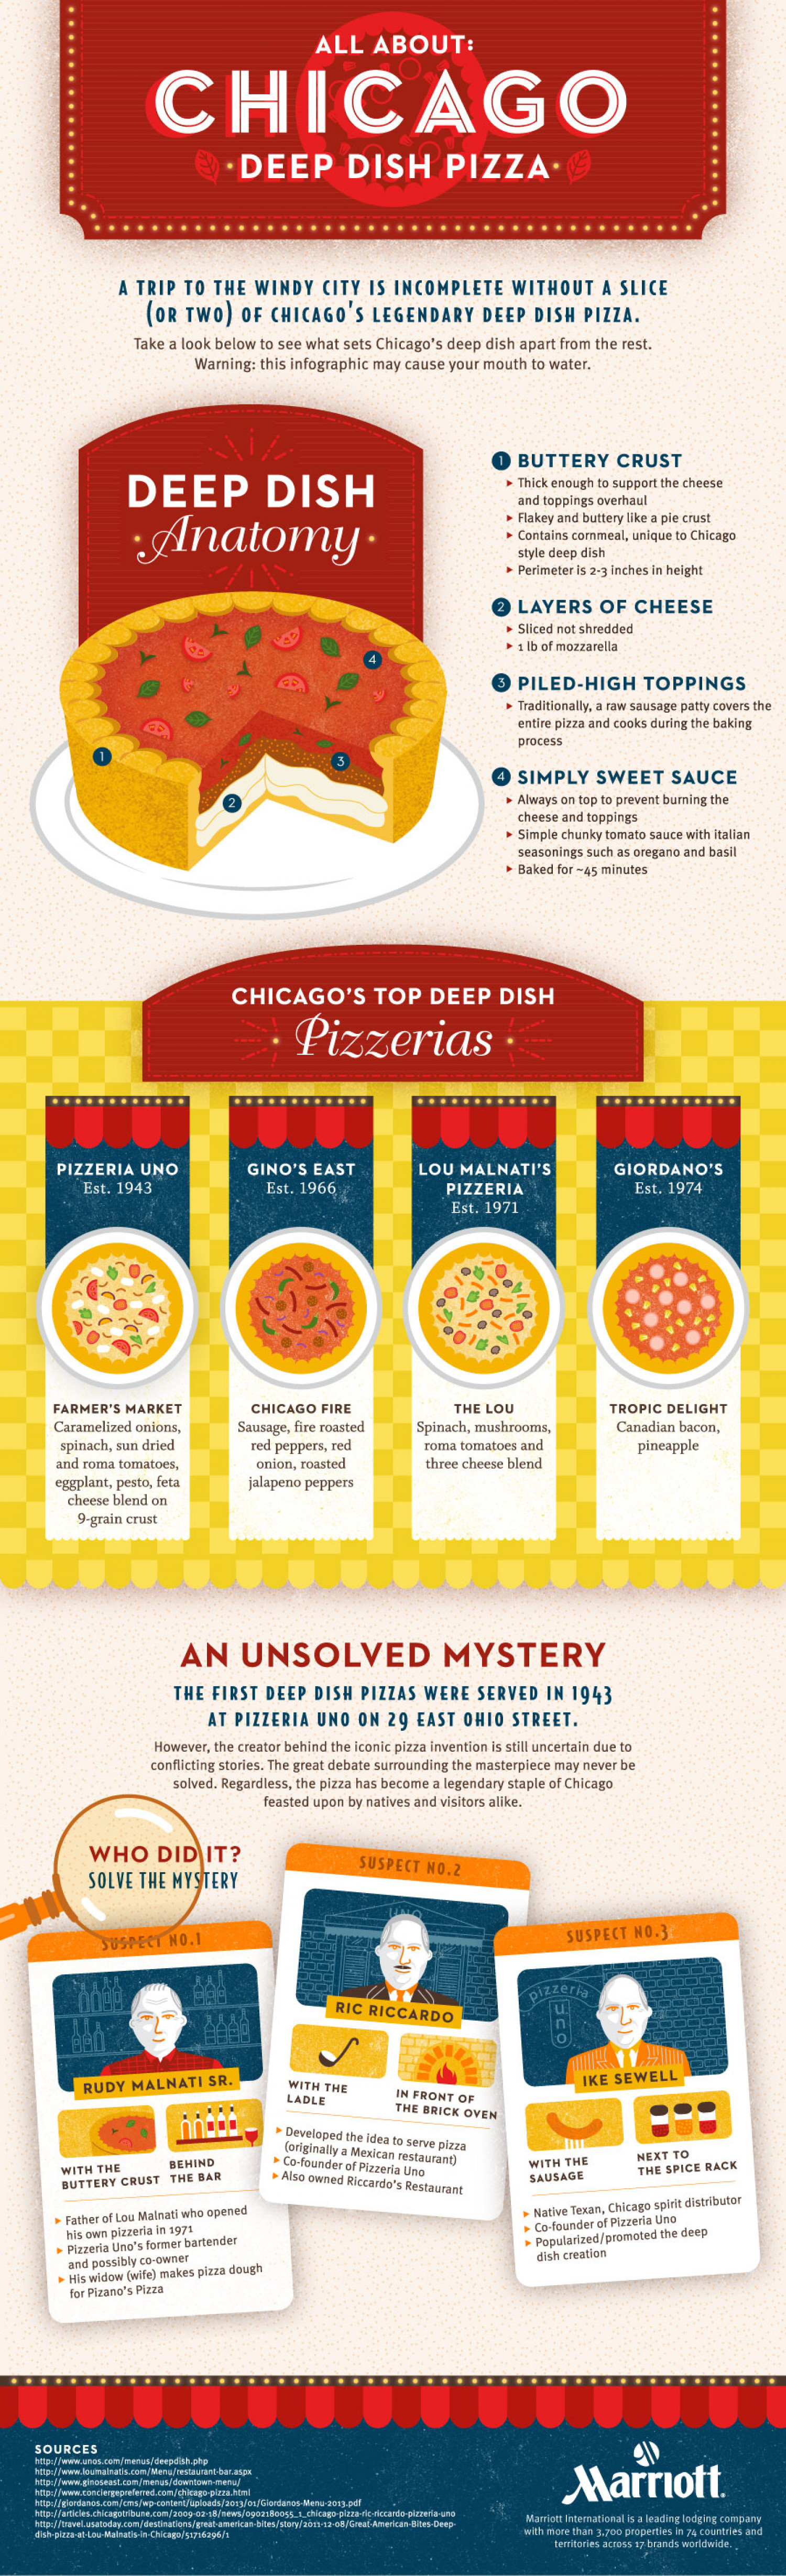 All About Chicago Deep Dish Pizza Infographic